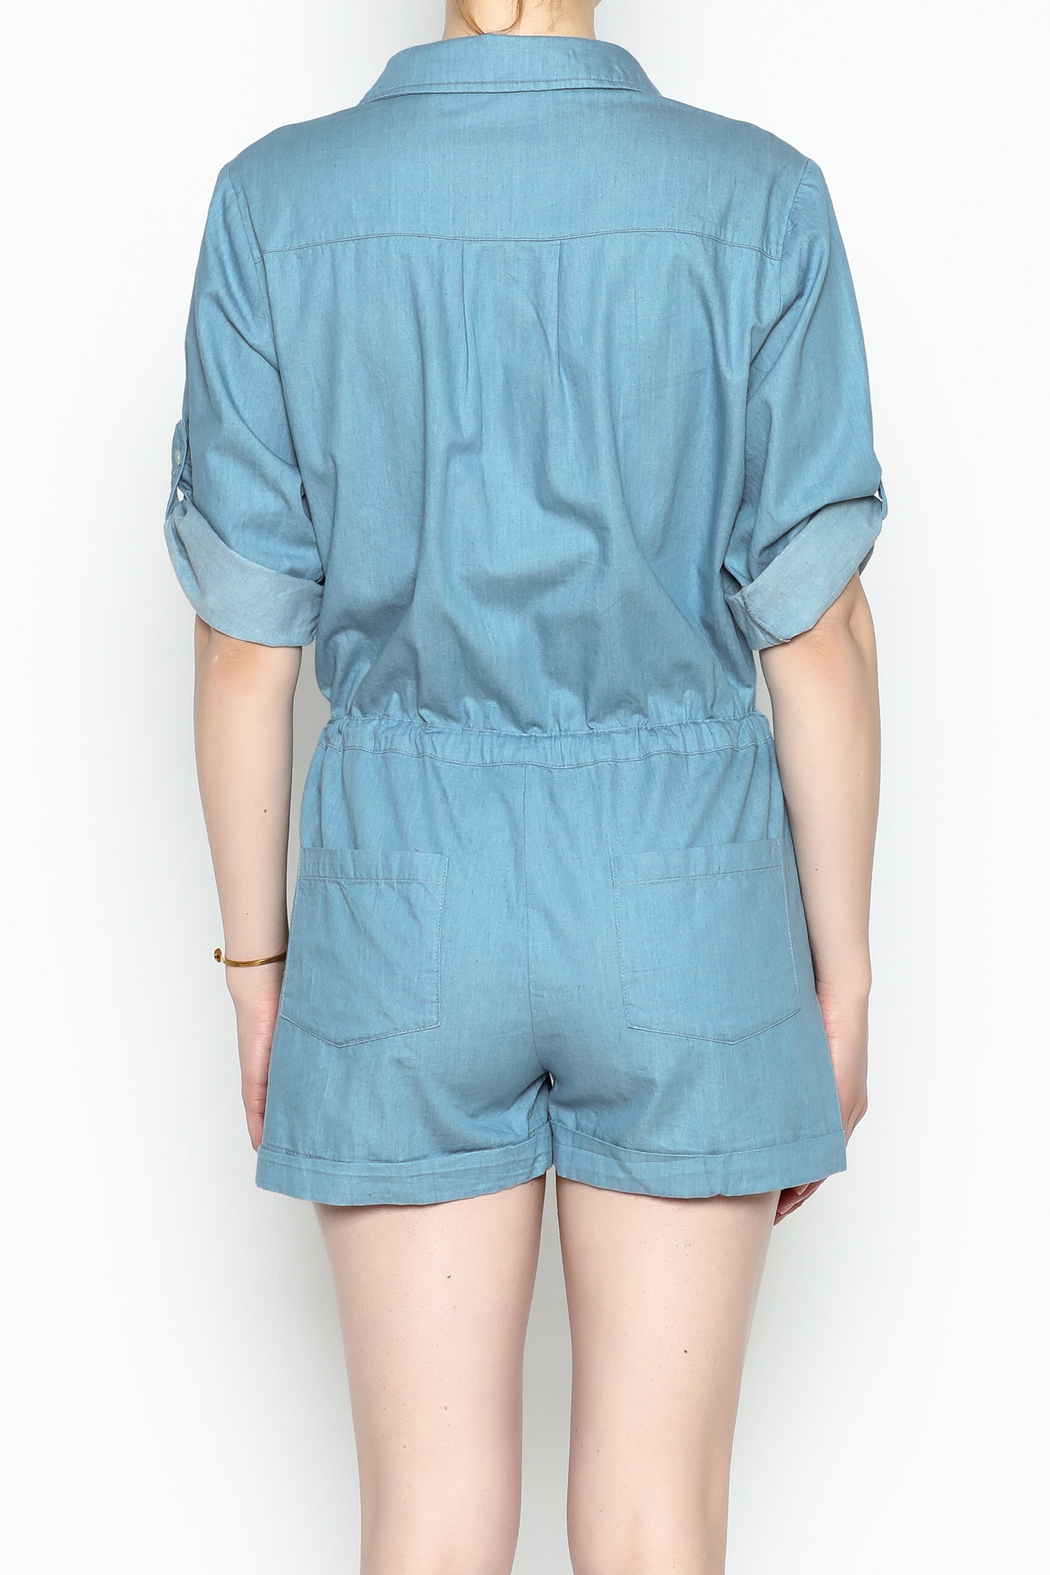 HYFVE Chambray Romper - Back Cropped Image